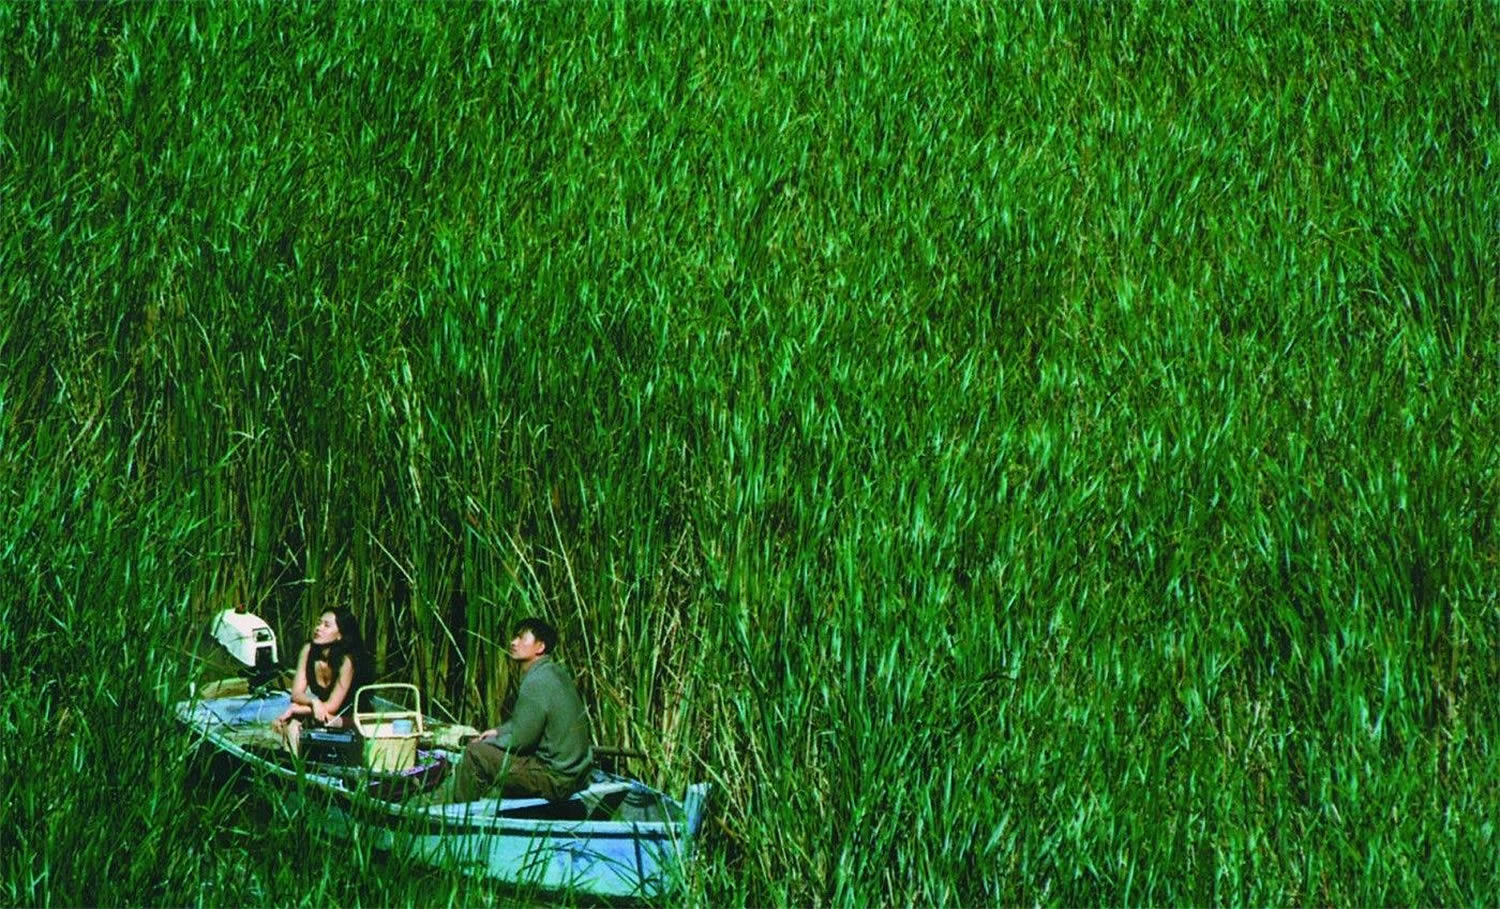 two people in boat in the movie The Isle, seom